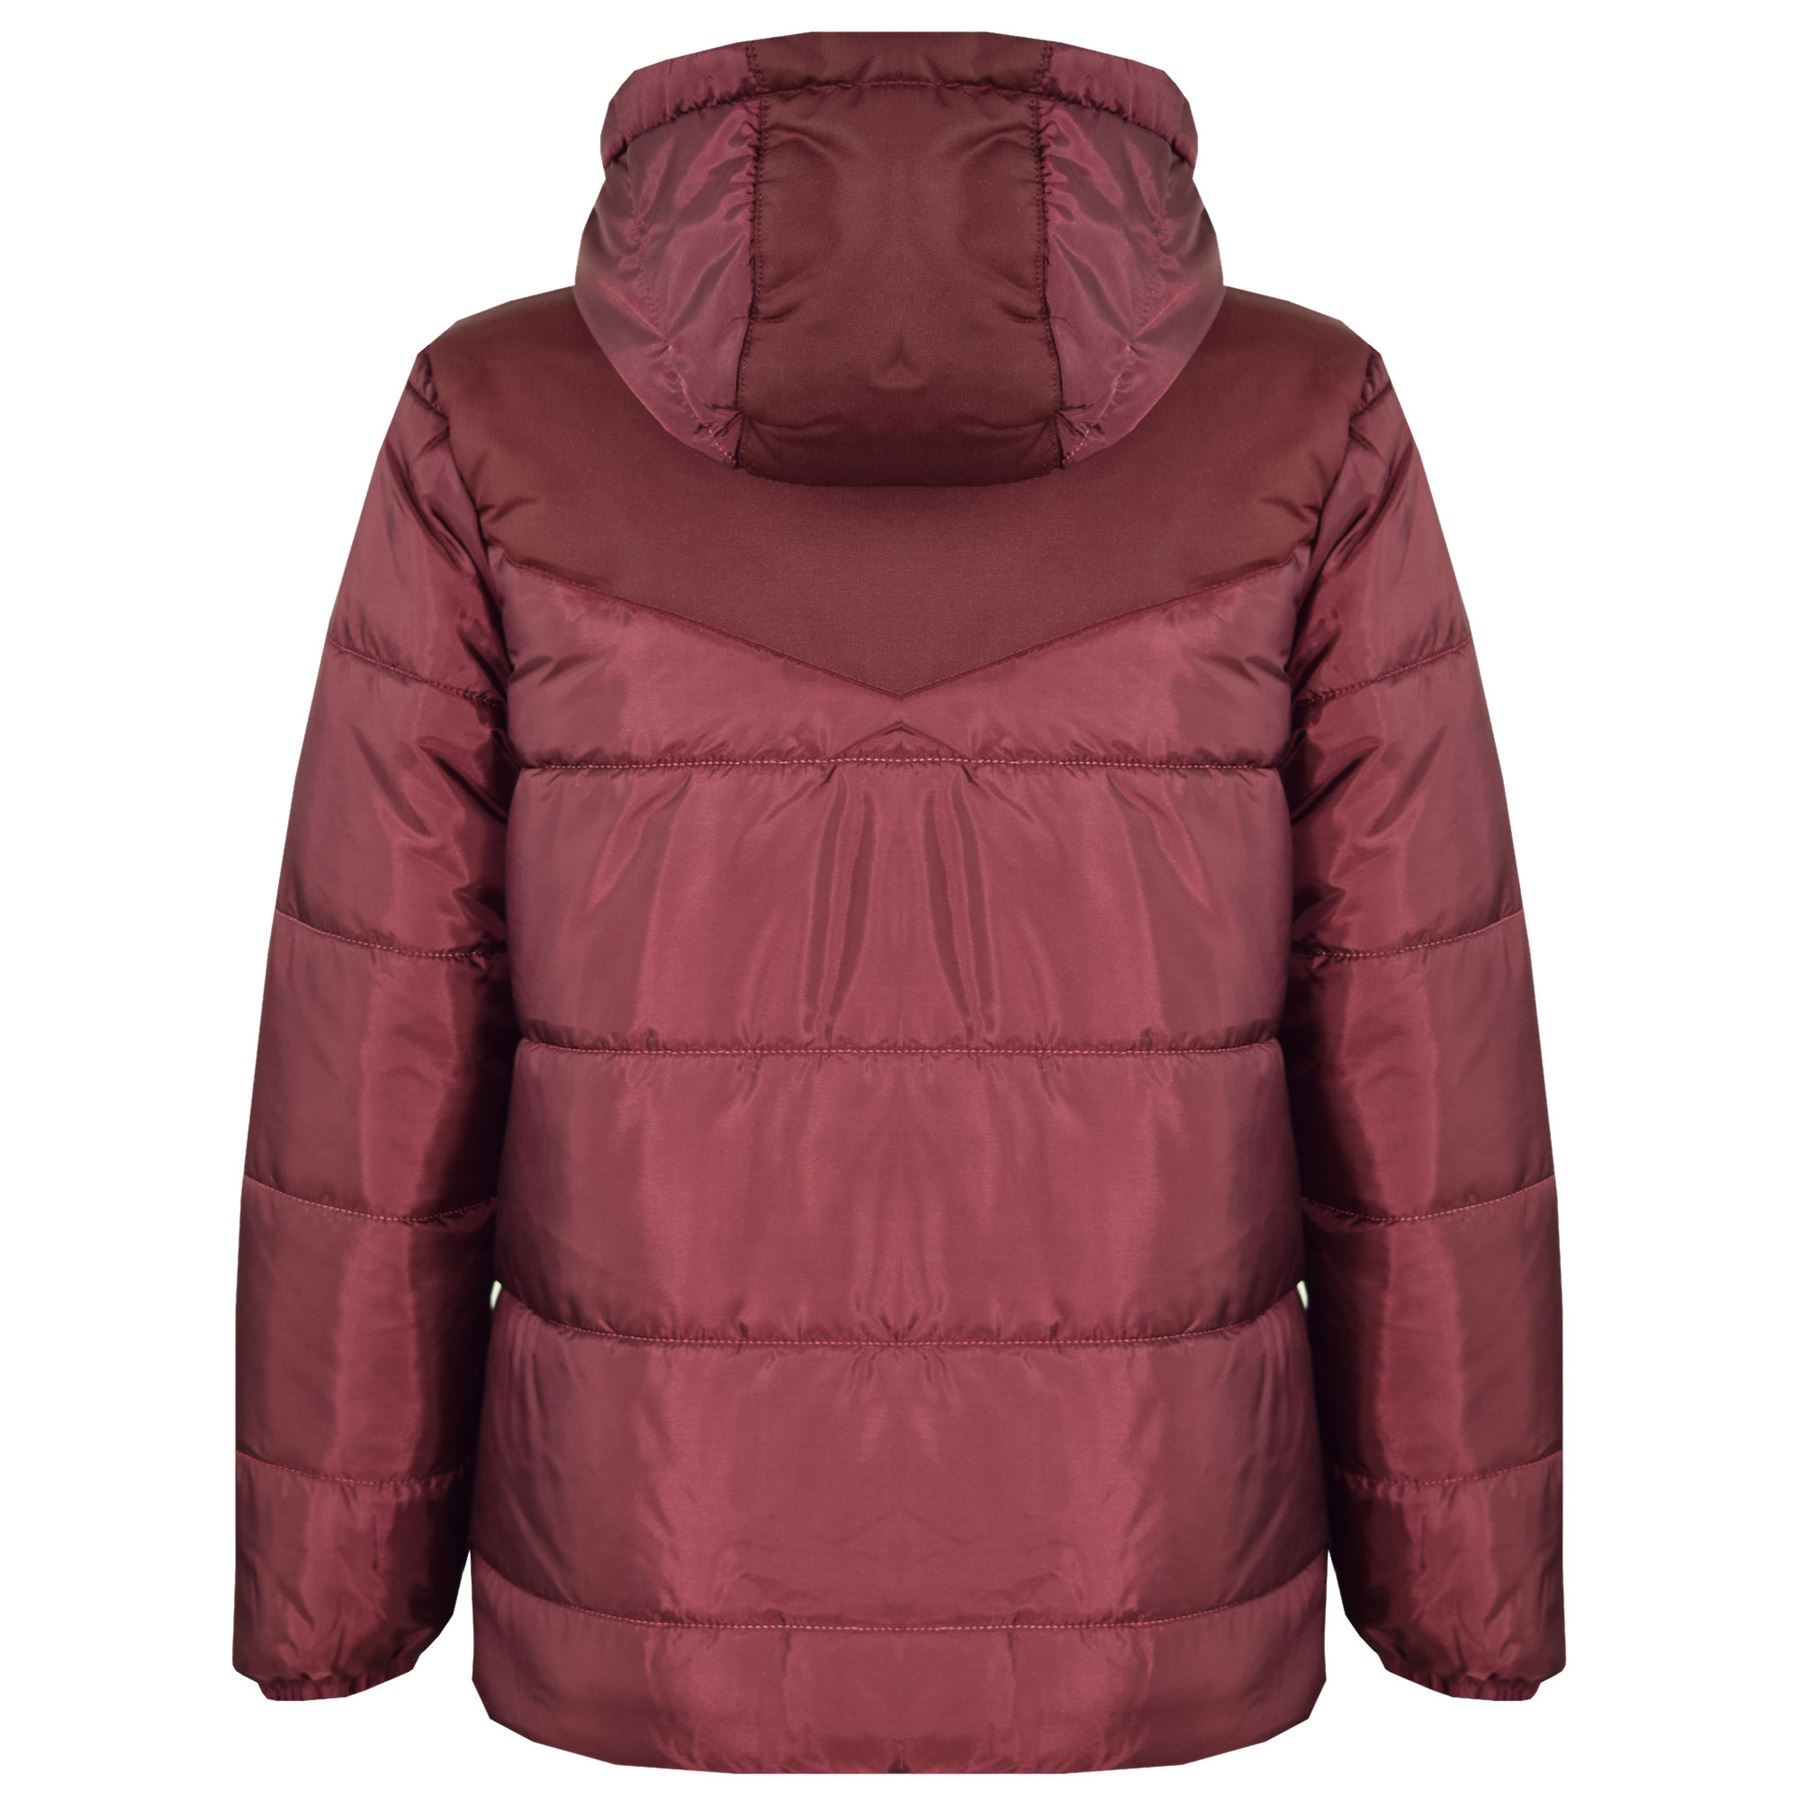 a8a8fe222 Kids Jackets Boys Girls Padded Puffer Bubble Zipped Hooded Warm ...